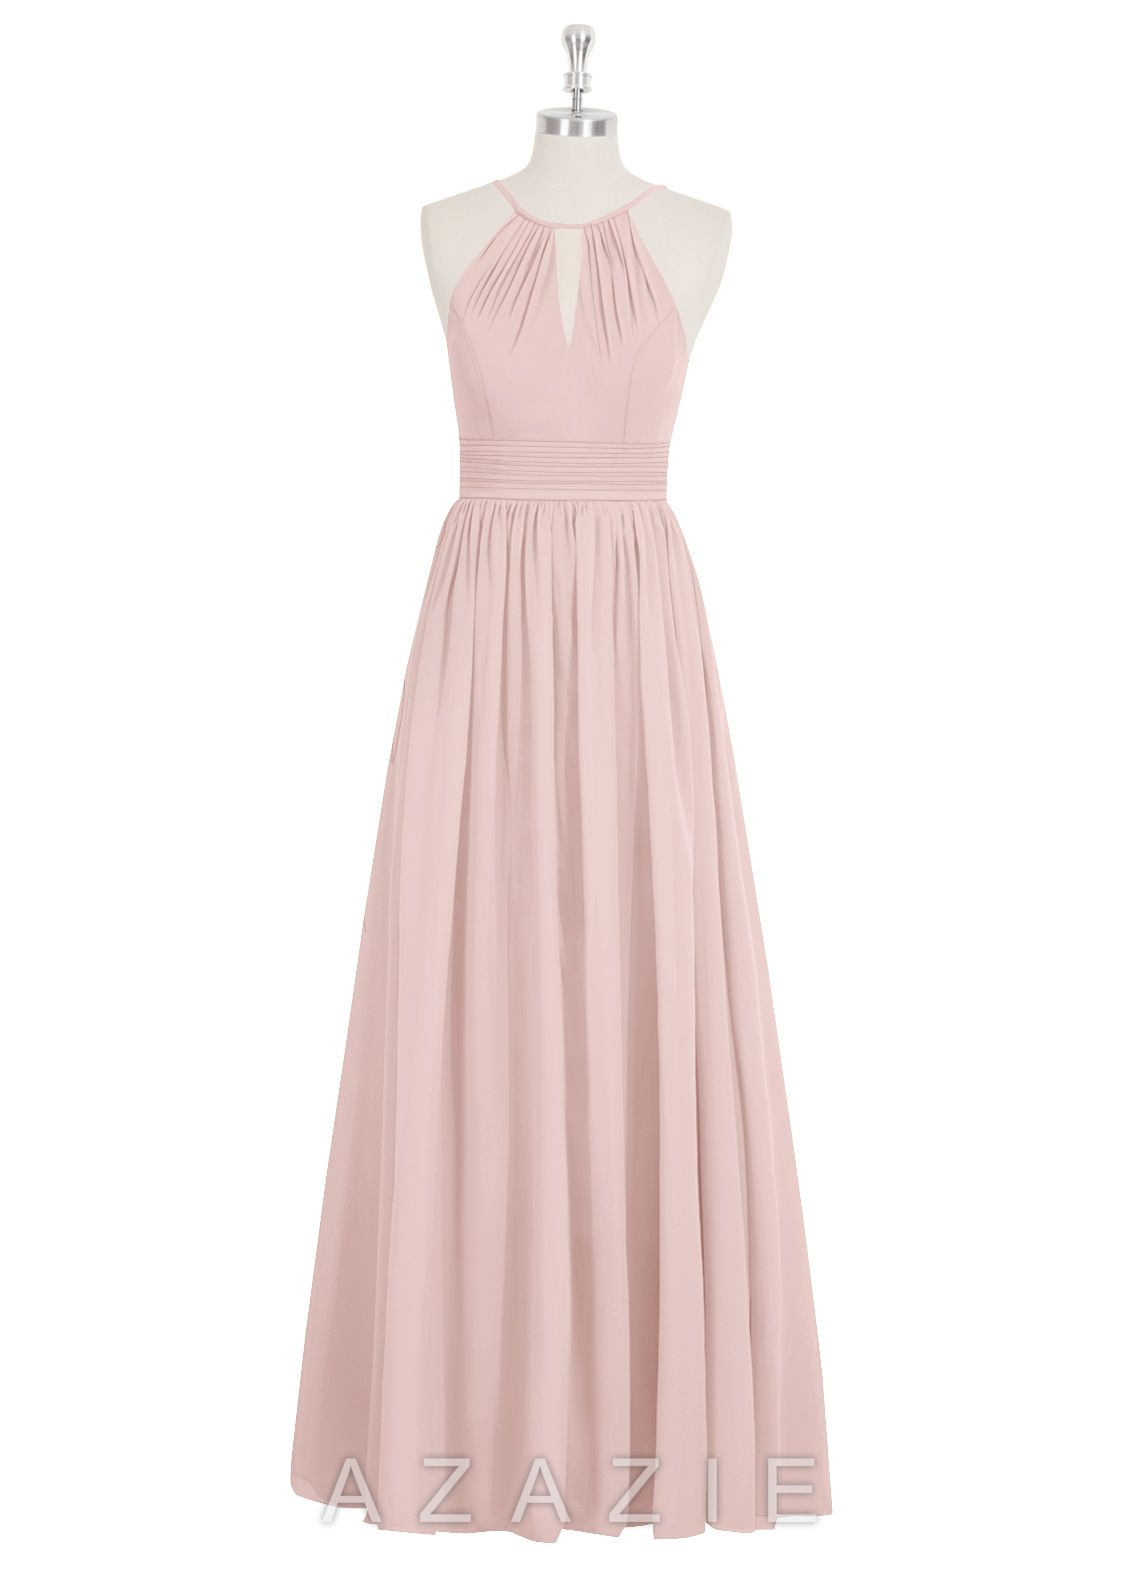 ac056f7b40c Shop Azazie Bridesmaid Dress - Cherish in Chiffon. Find the perfect  made-to-order bridesmaid dresses for your bridal party in your favorite  color